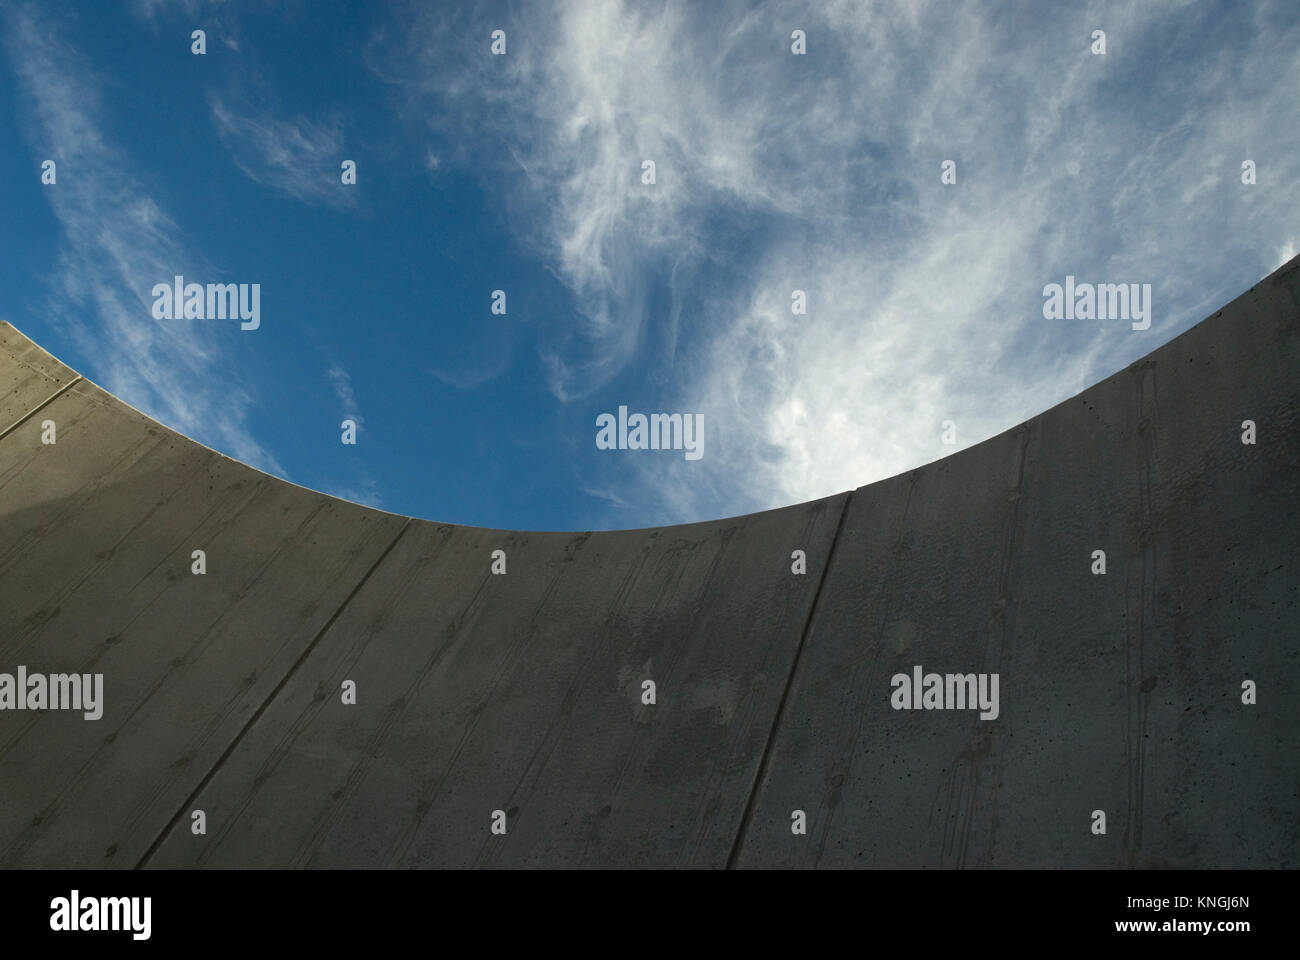 Curved concrete wall.USA - Stock Image